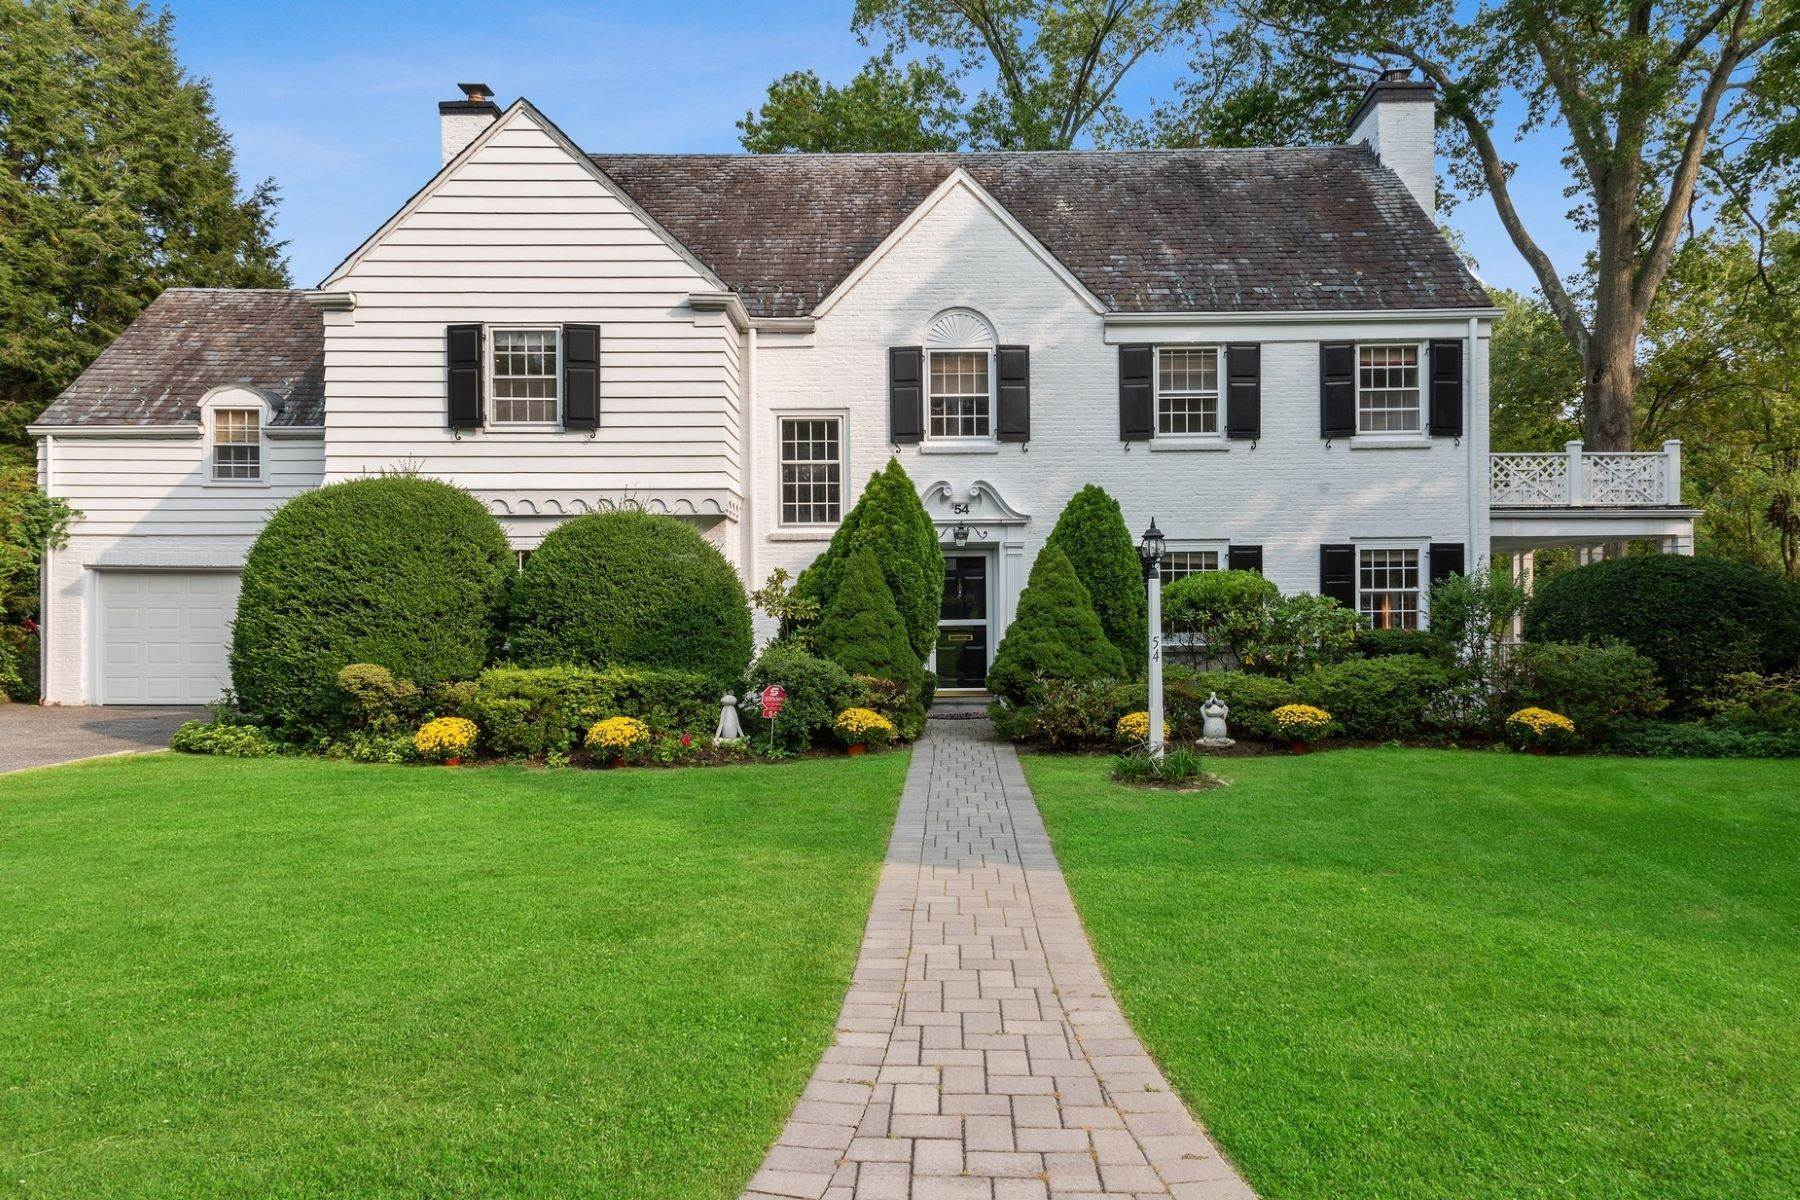 Single Family Homes for Sale at Natural Beauty Abounds on this Park Like Property 54 Tisdale Road Scarsdale, New York 10583 United States